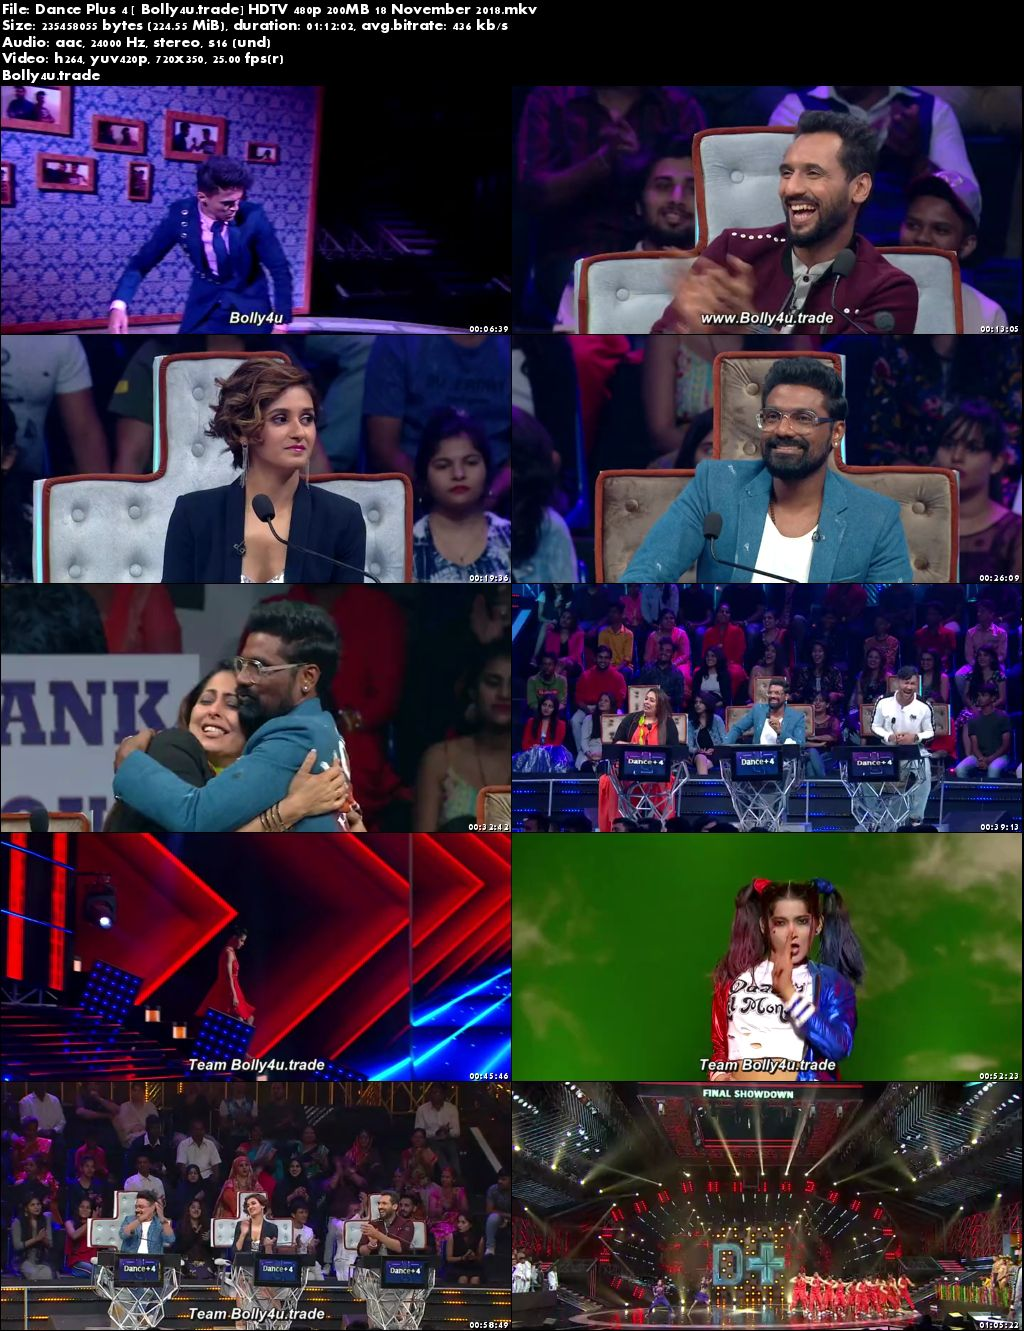 Dance Plus Season 4 HDTV 480p 200MB 18 November 2018 Download